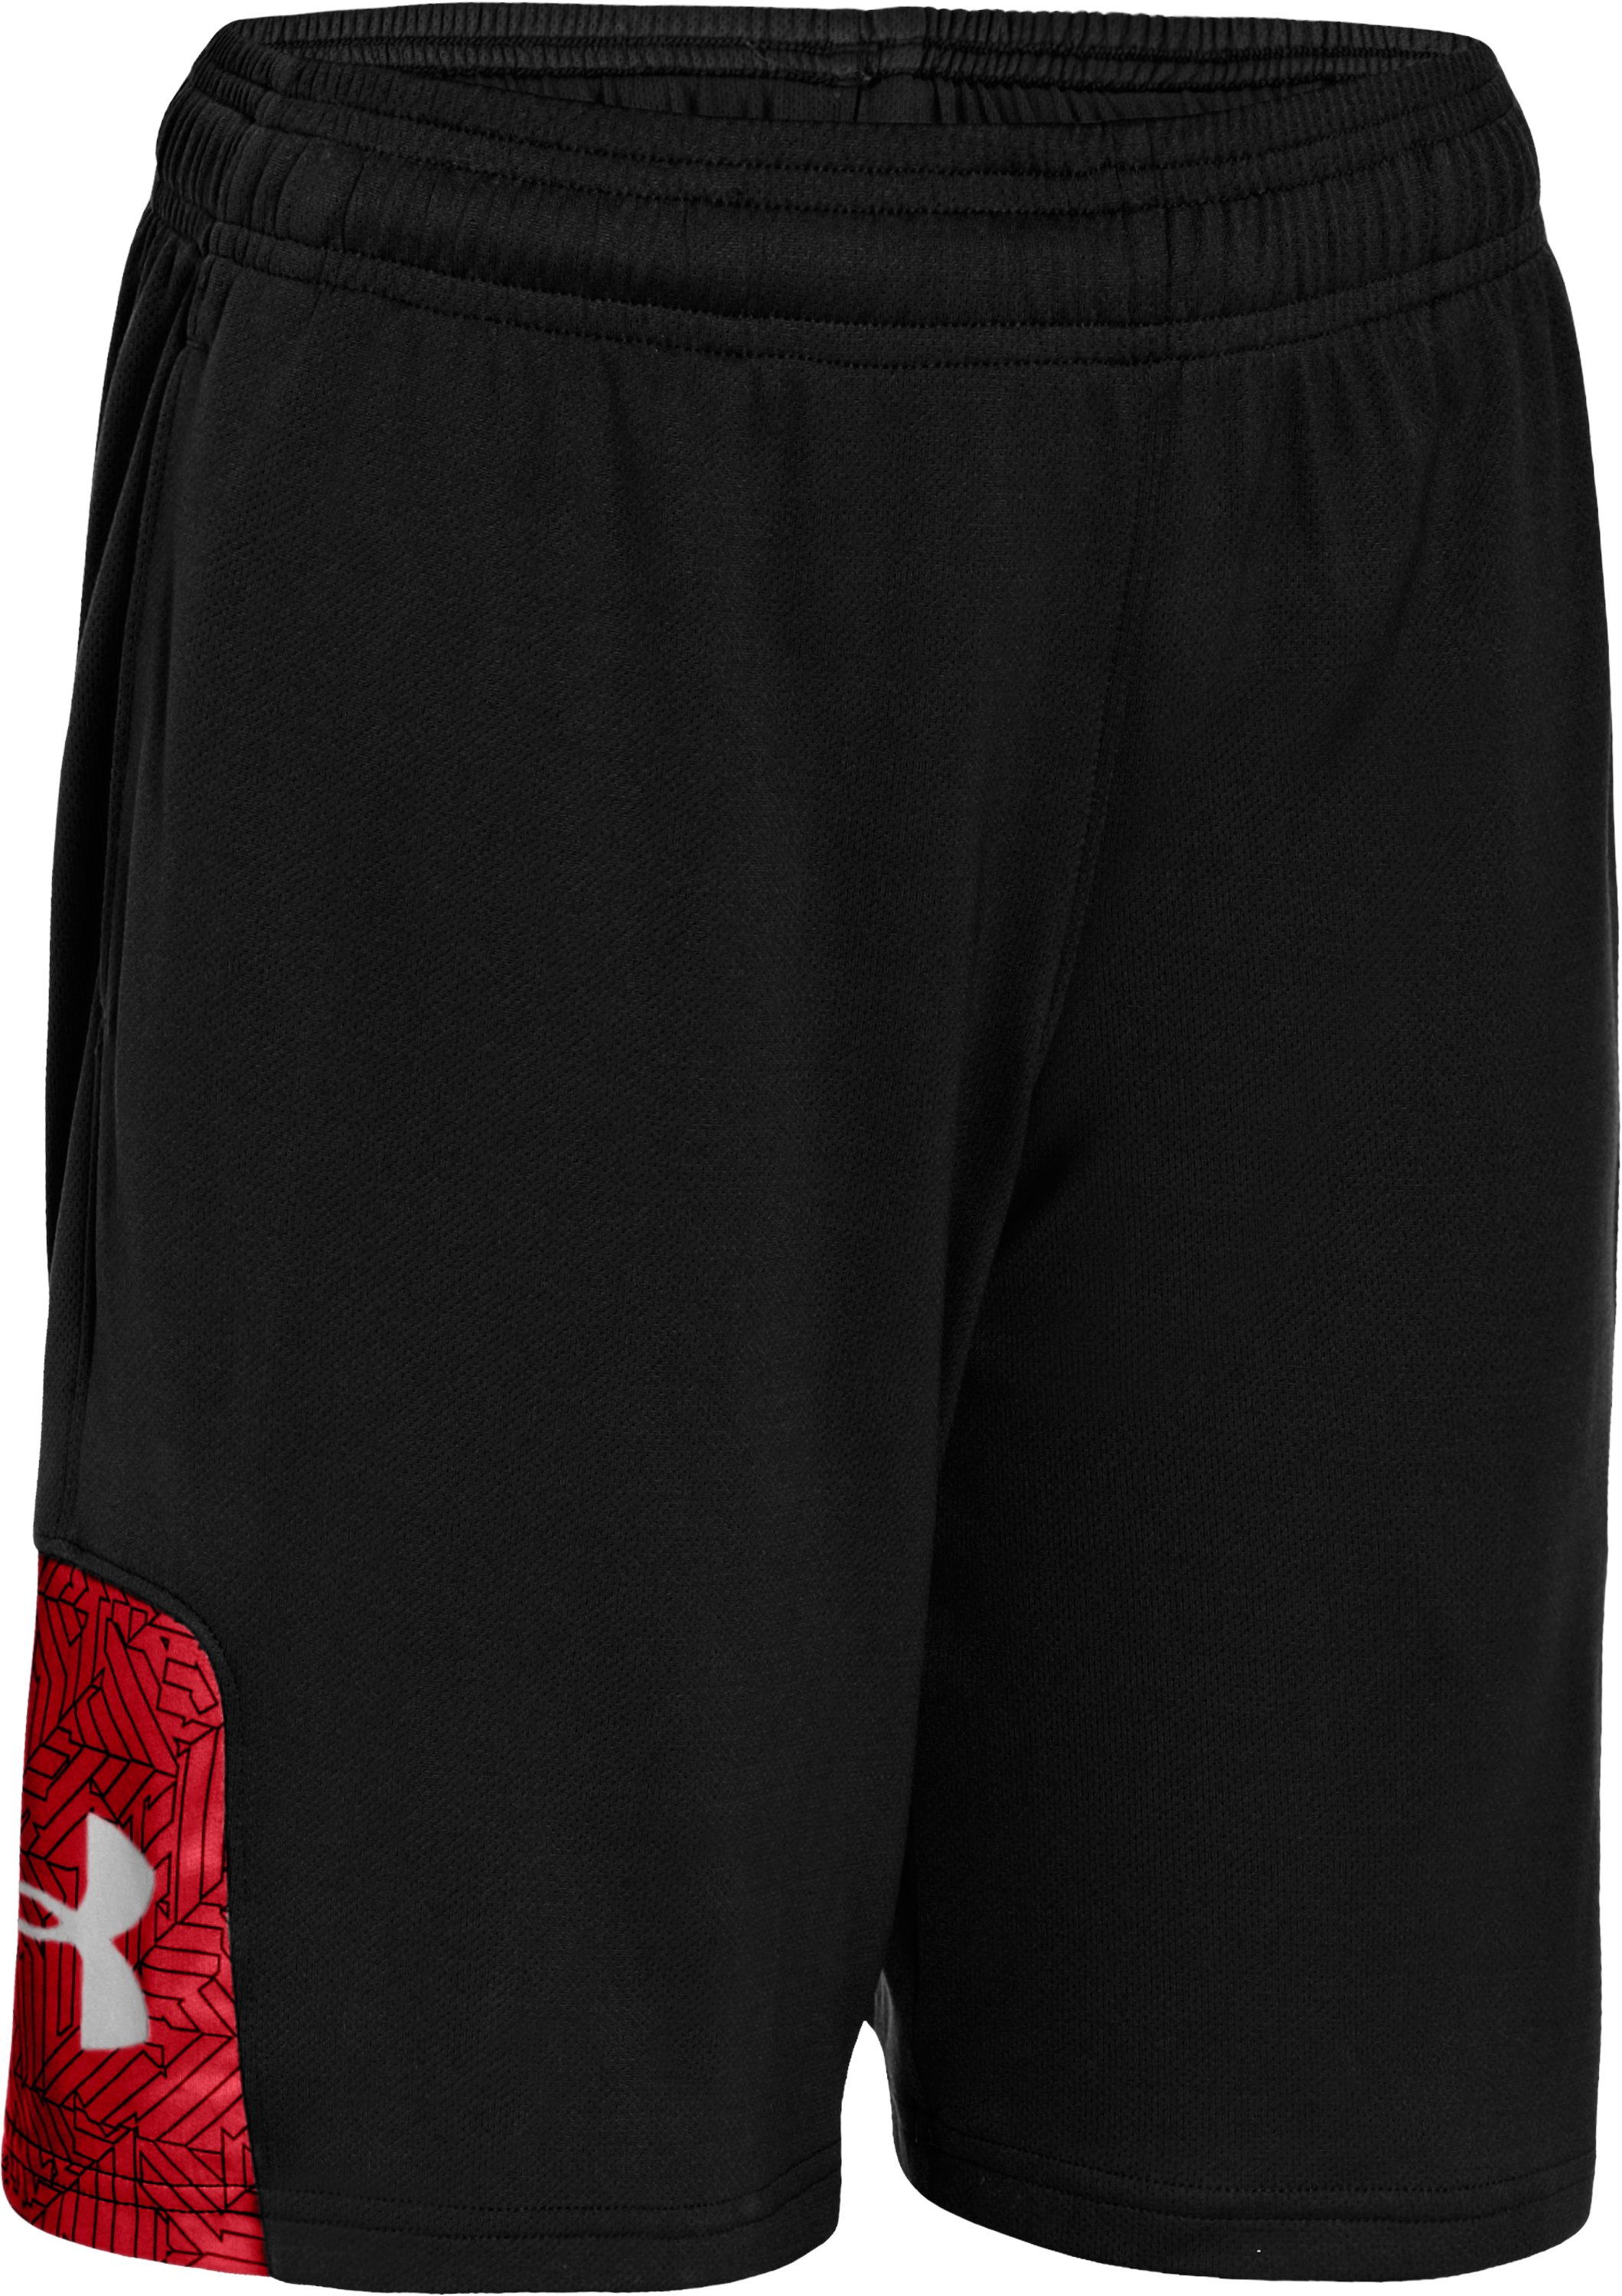 Boys' UA Watch Out Shorts, Black